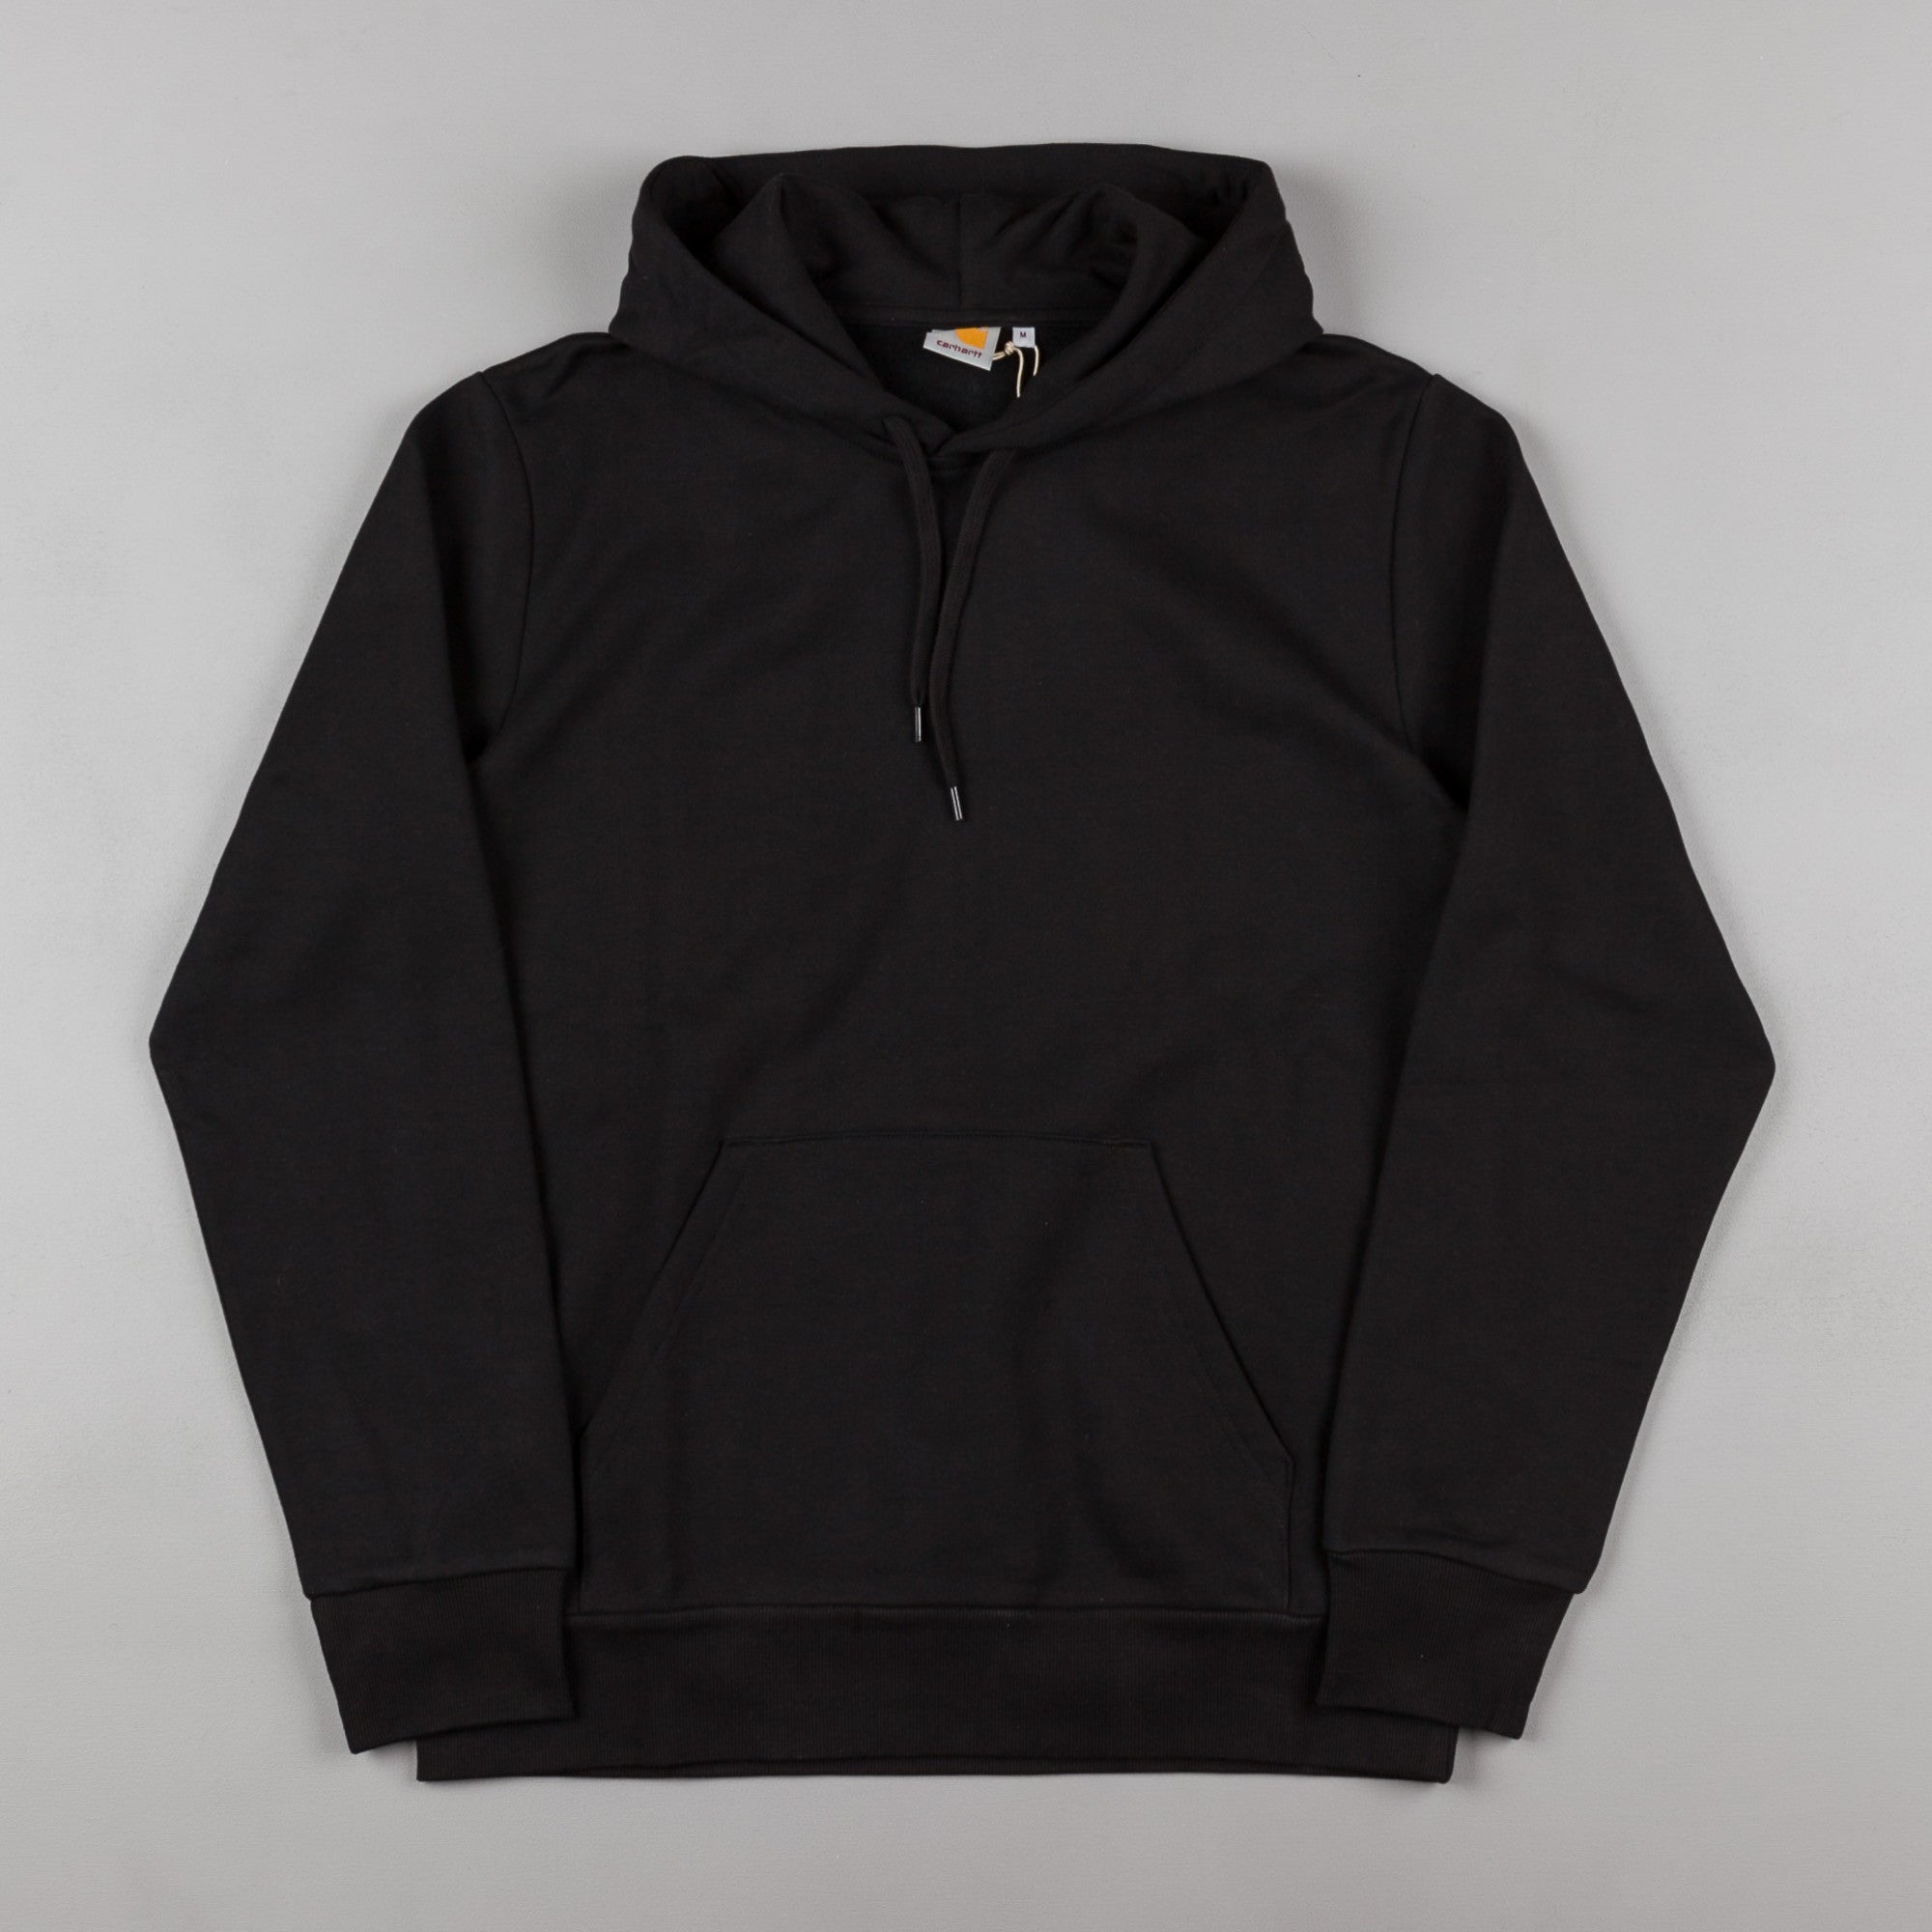 Carhartt Cart Hooded Sweatshirt - Black / White